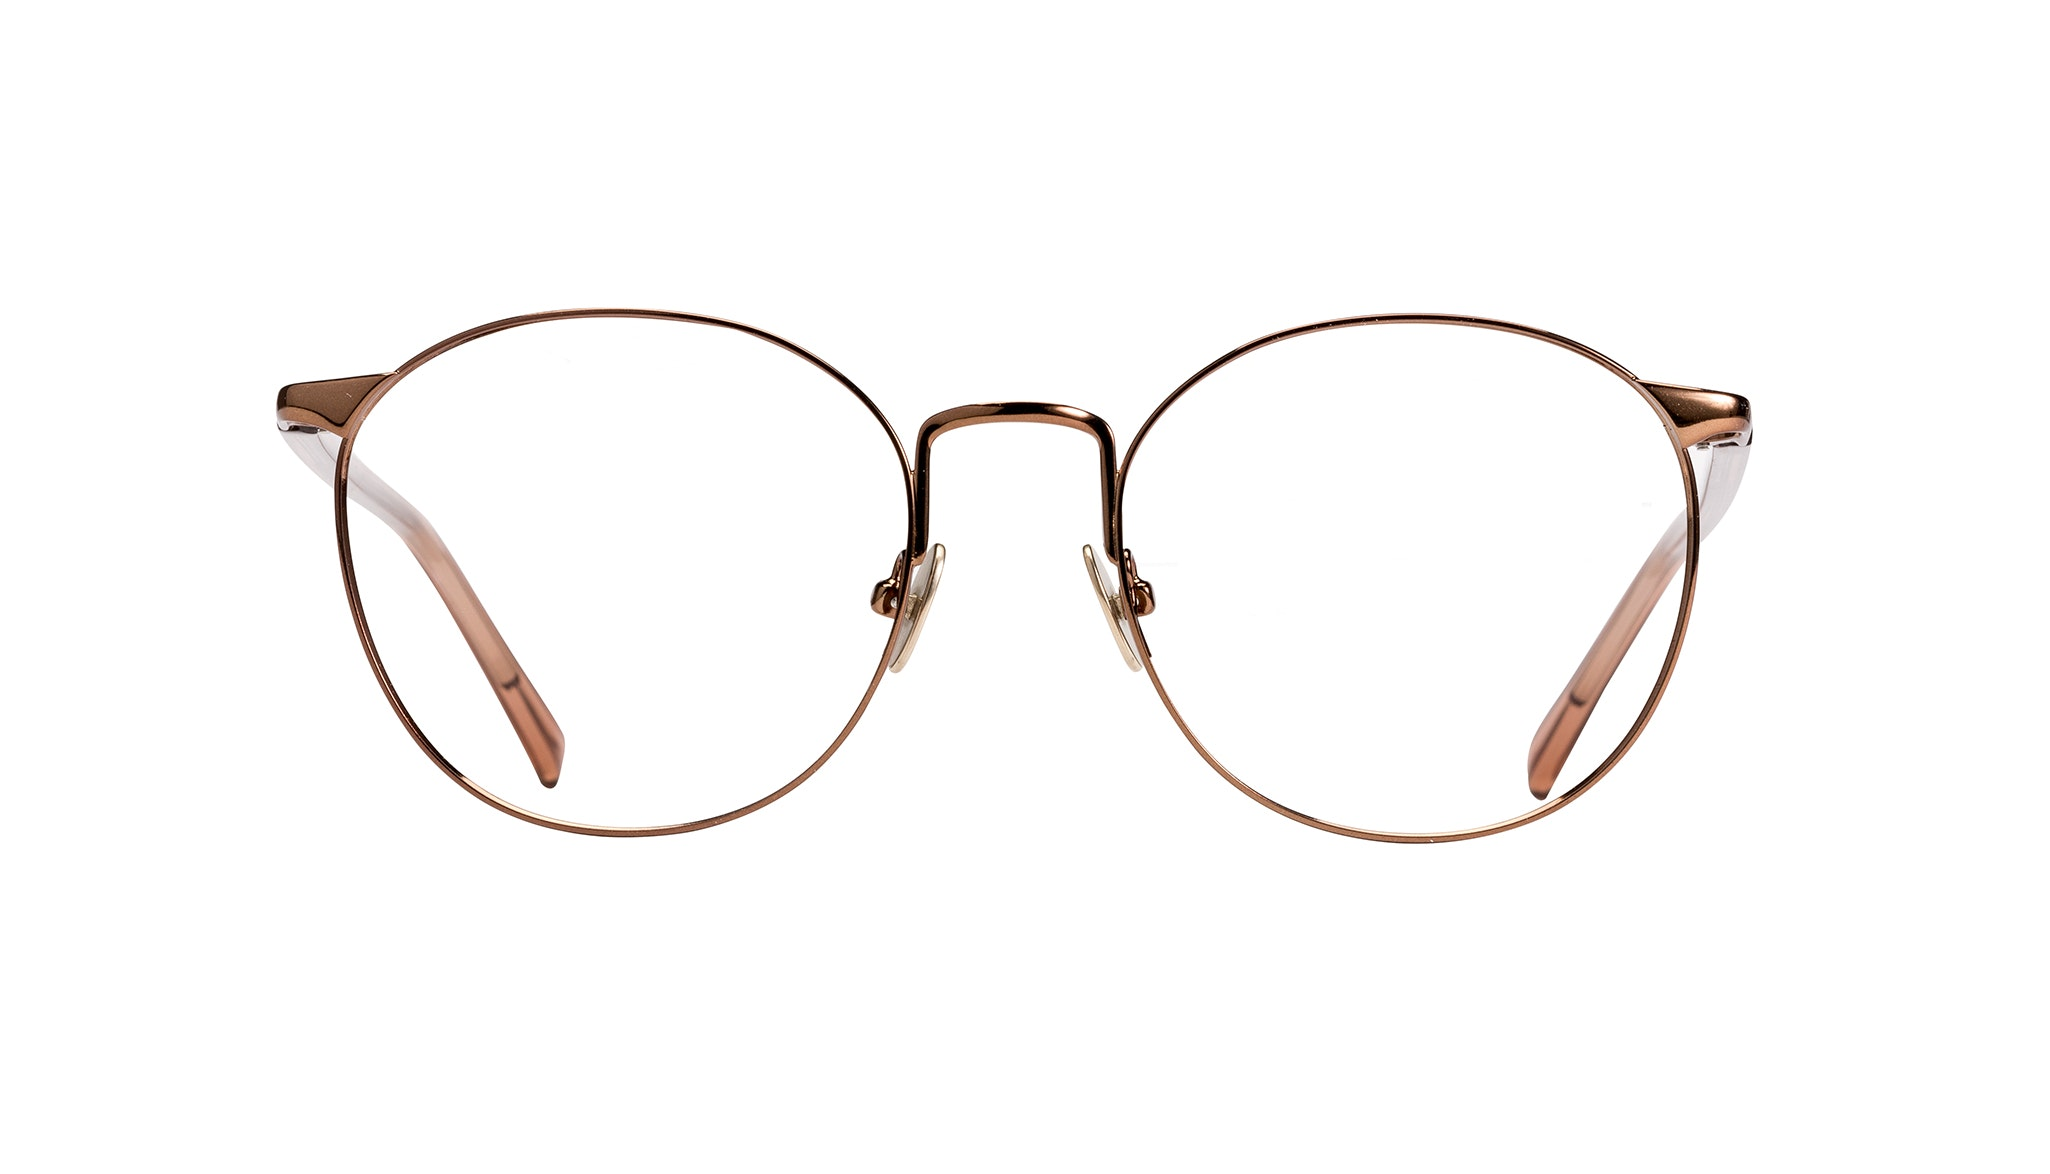 Affordable Fashion Glasses Round Eyeglasses Women Romy Crepuscule